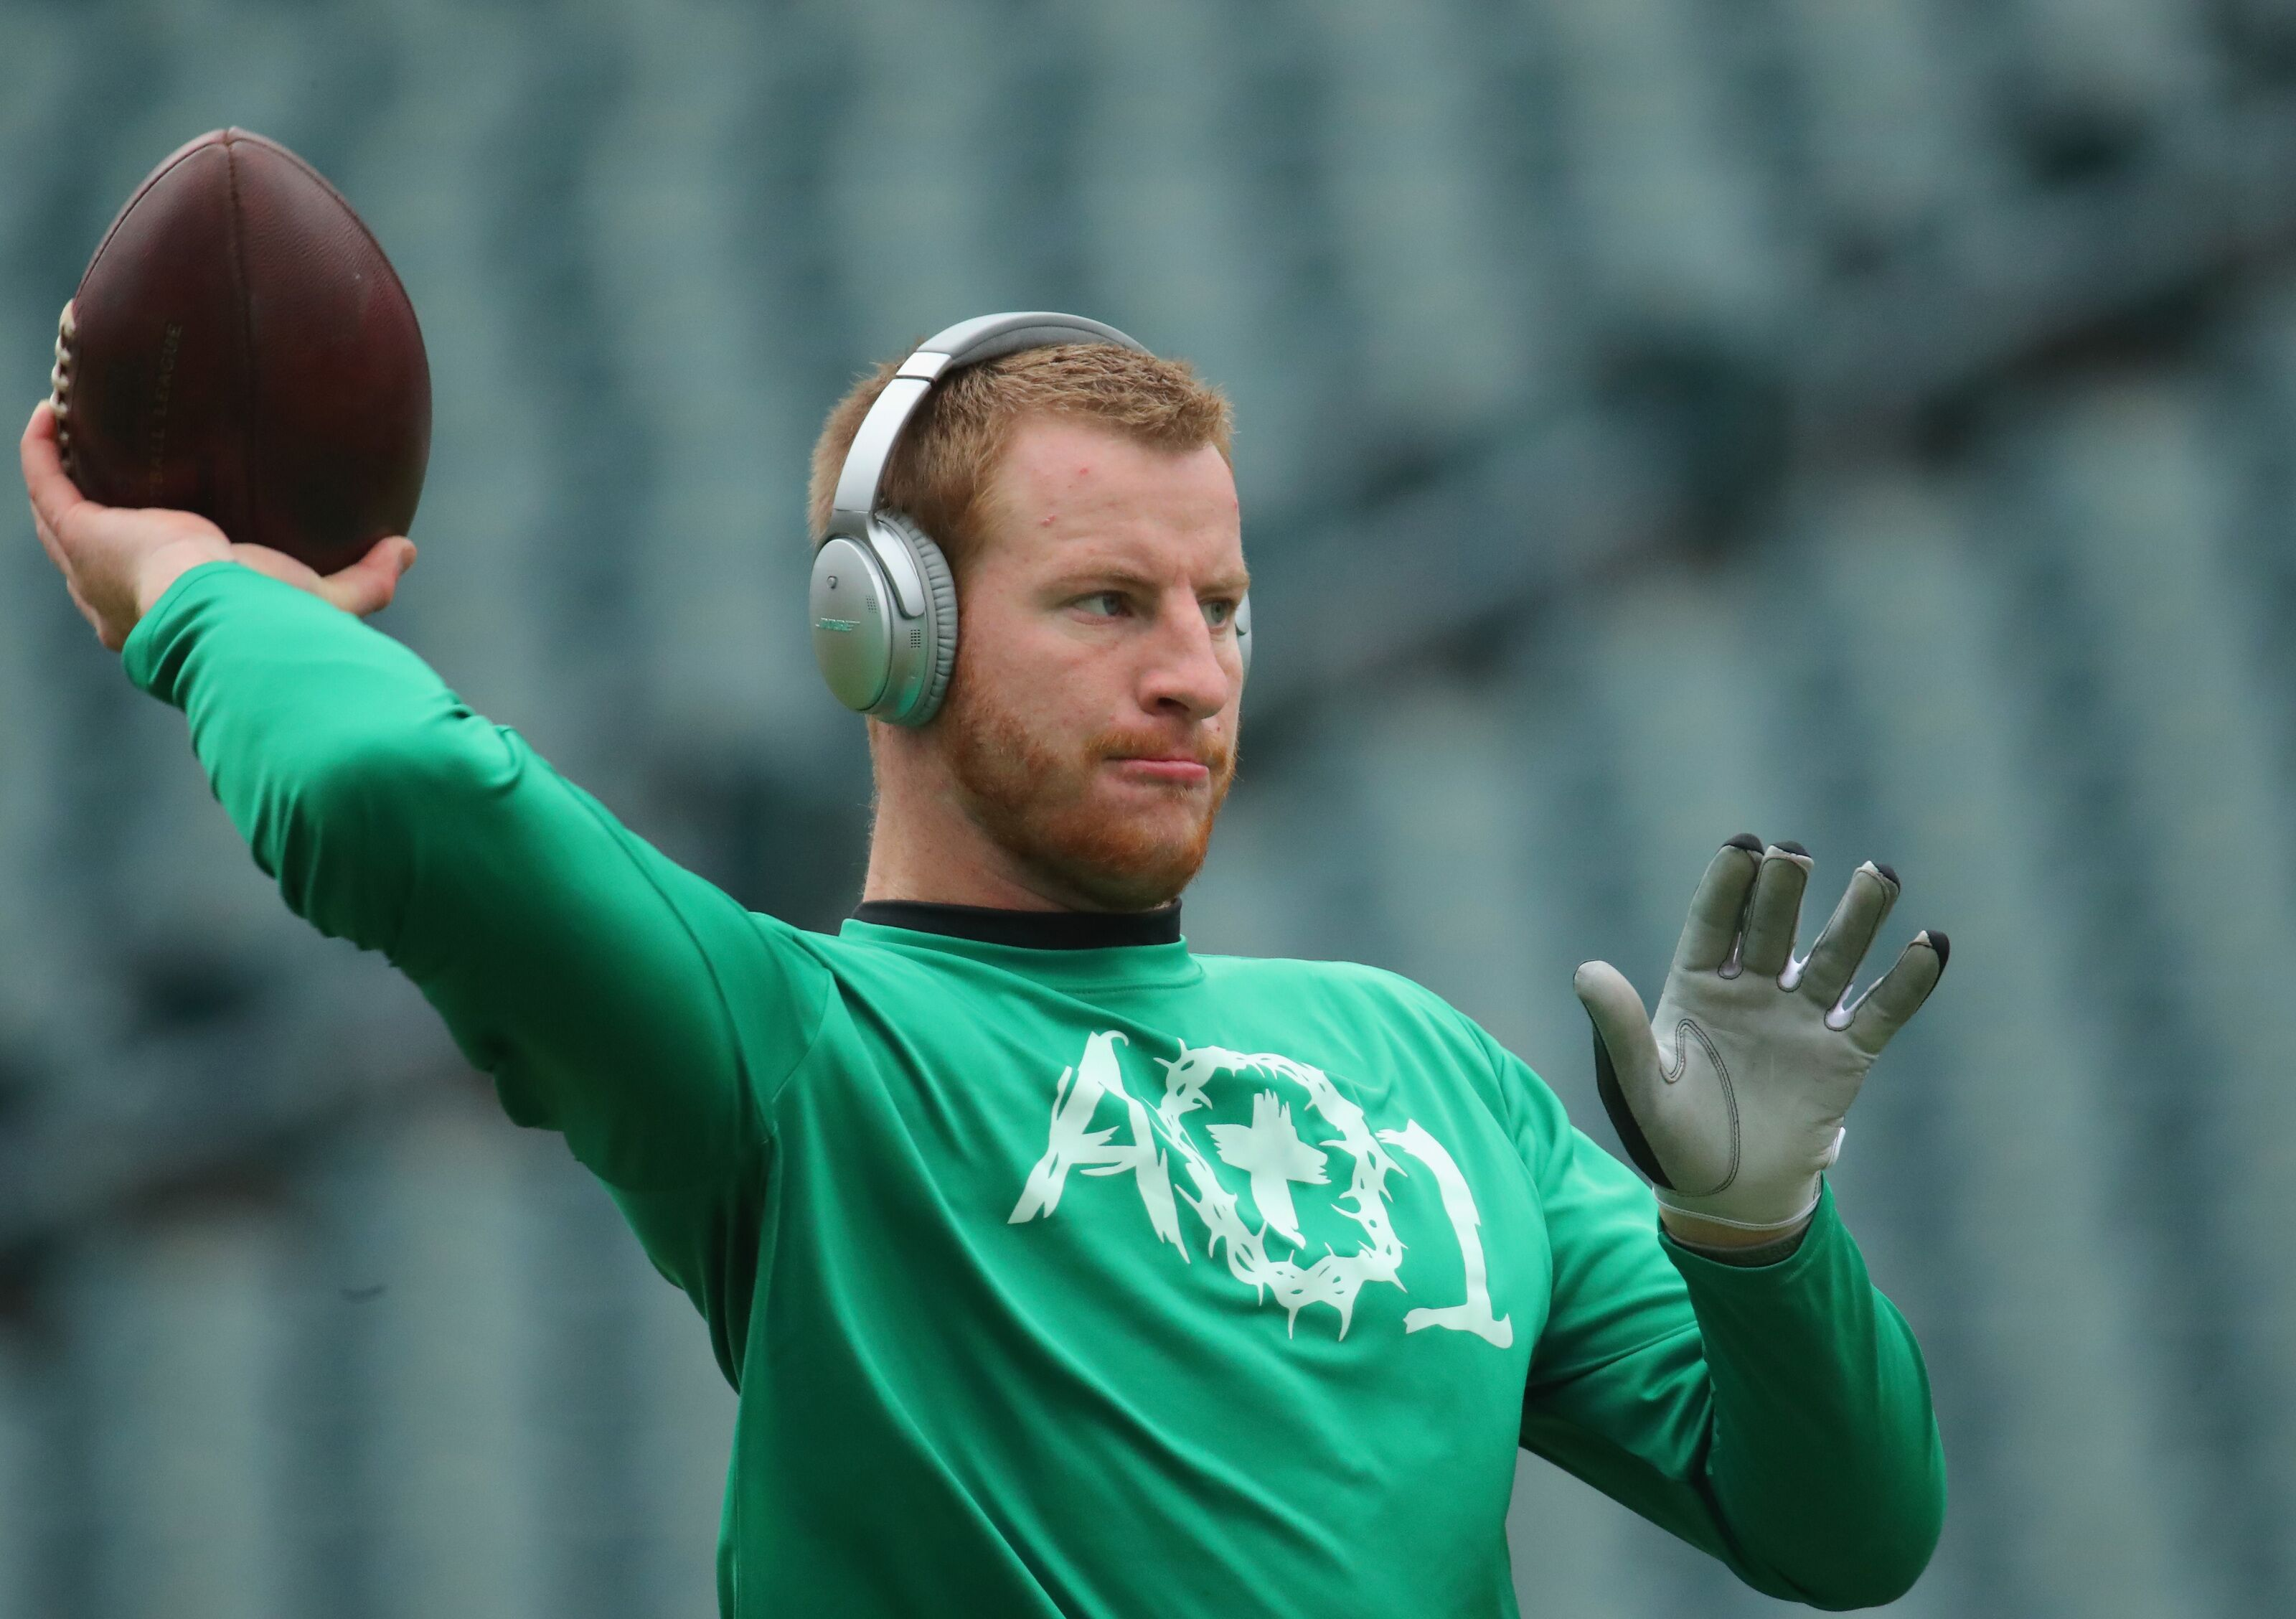 Fantasy football: NFL experts predict gaudy stats for Carson Wentz in 2019